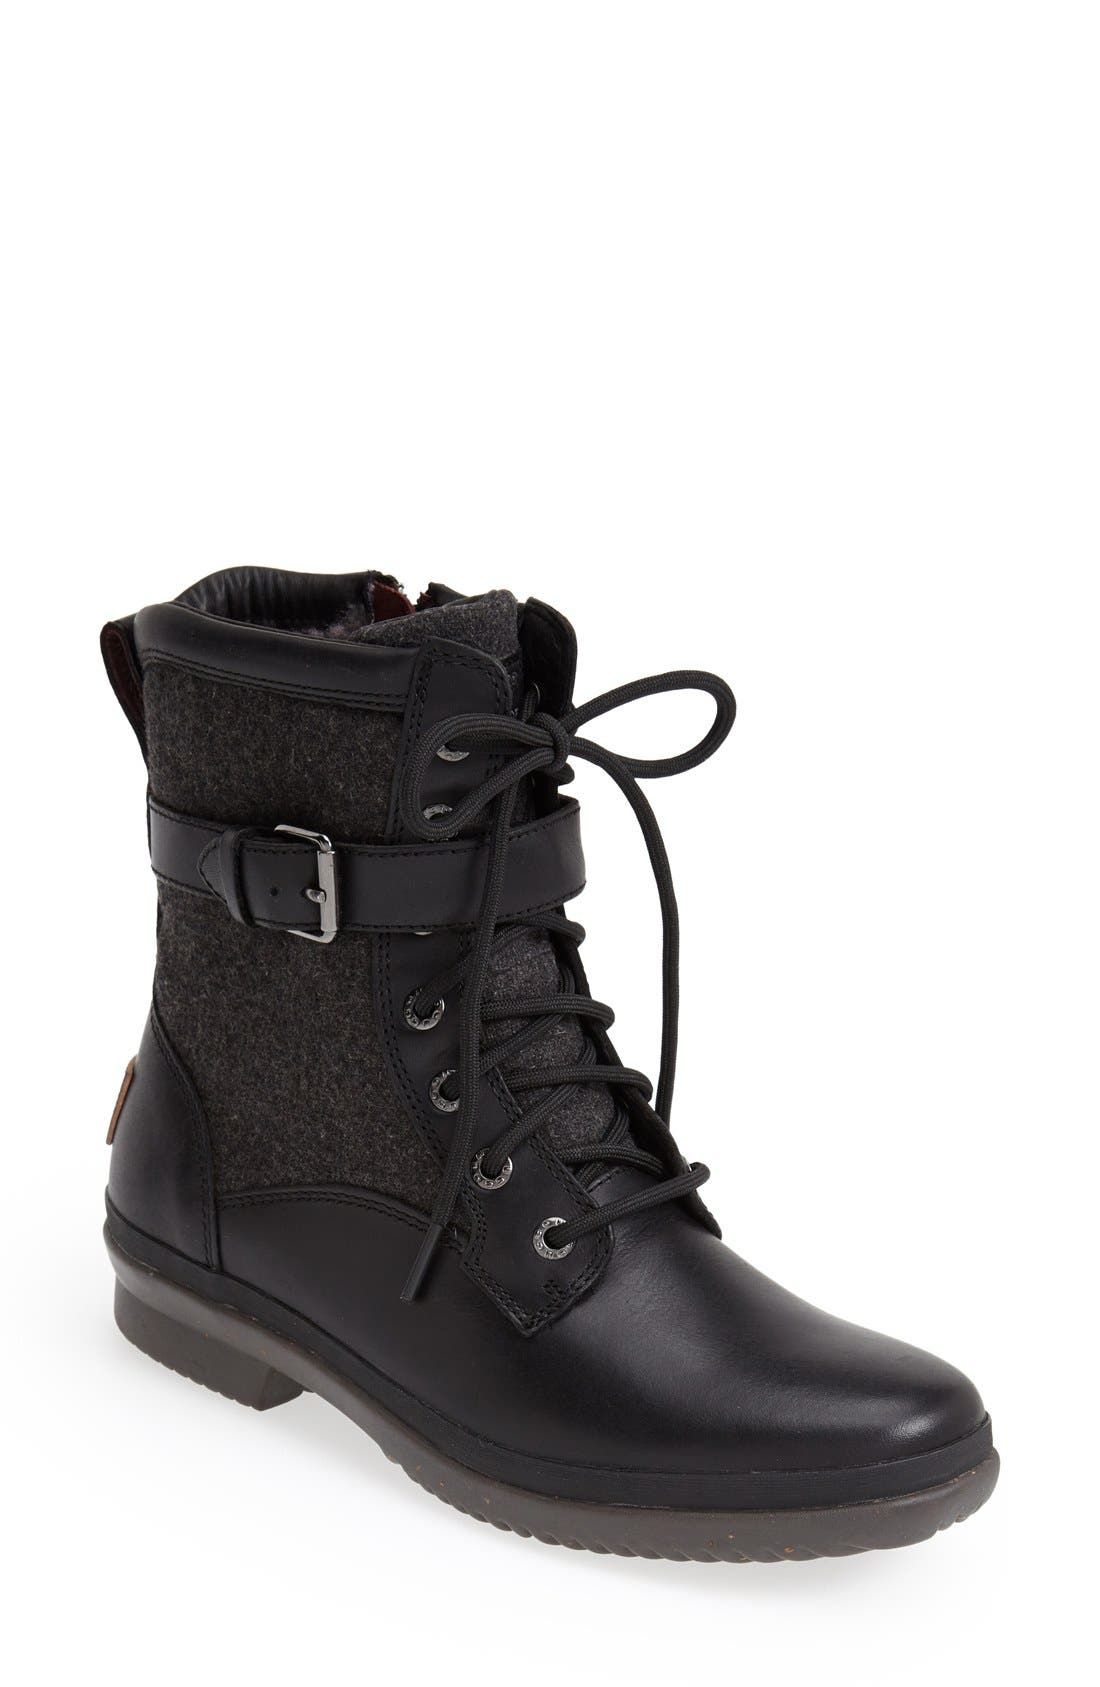 Alternate Image 1 Selected - UGG® Kesey Waterproof Boot (Women)